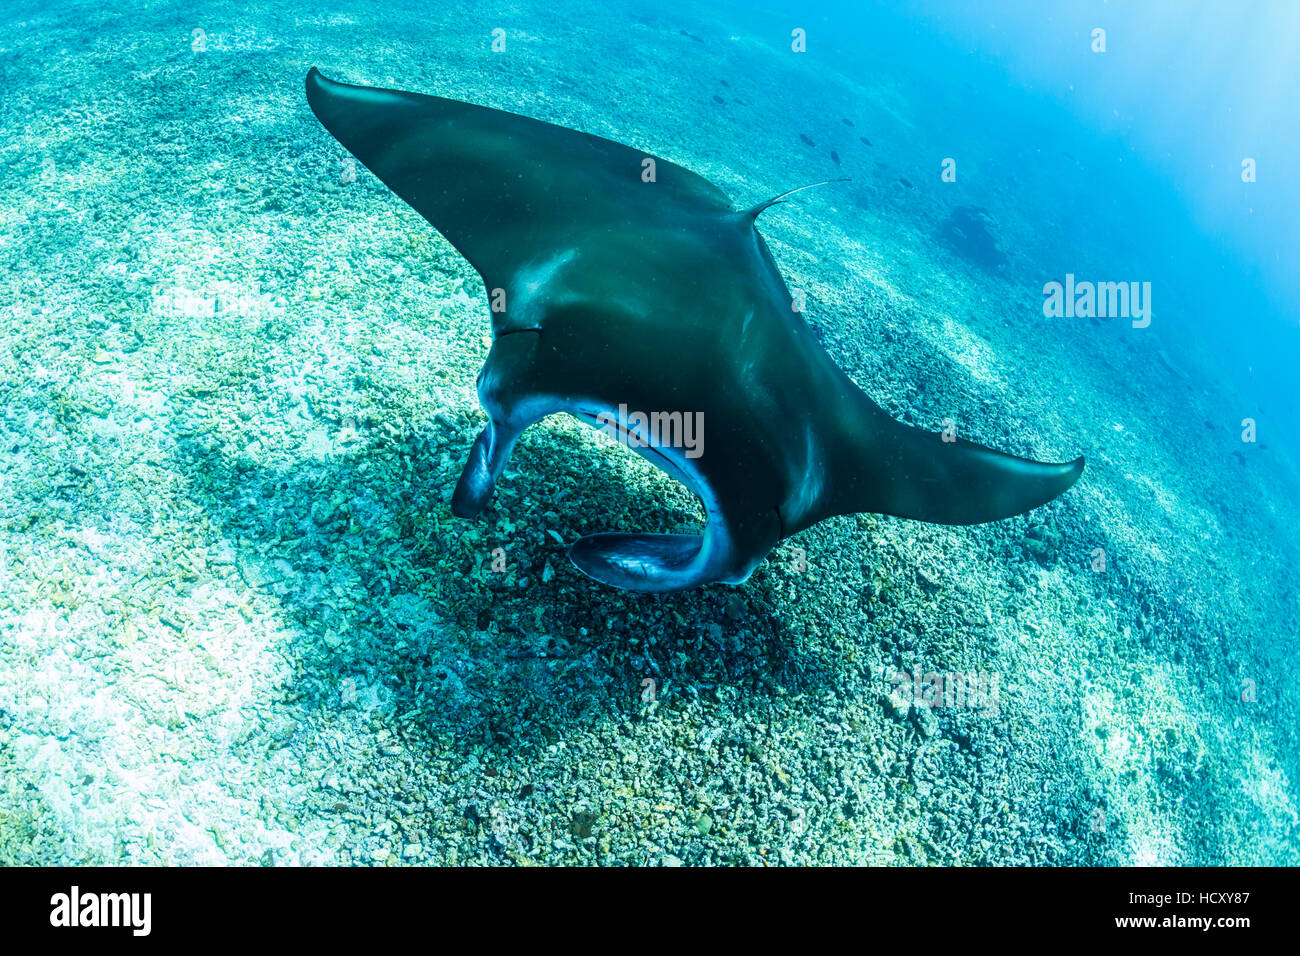 An adult manta ray (Manta birostris) at Makaser, Komodo National Park, Flores Sea, Indonesia Stock Photo